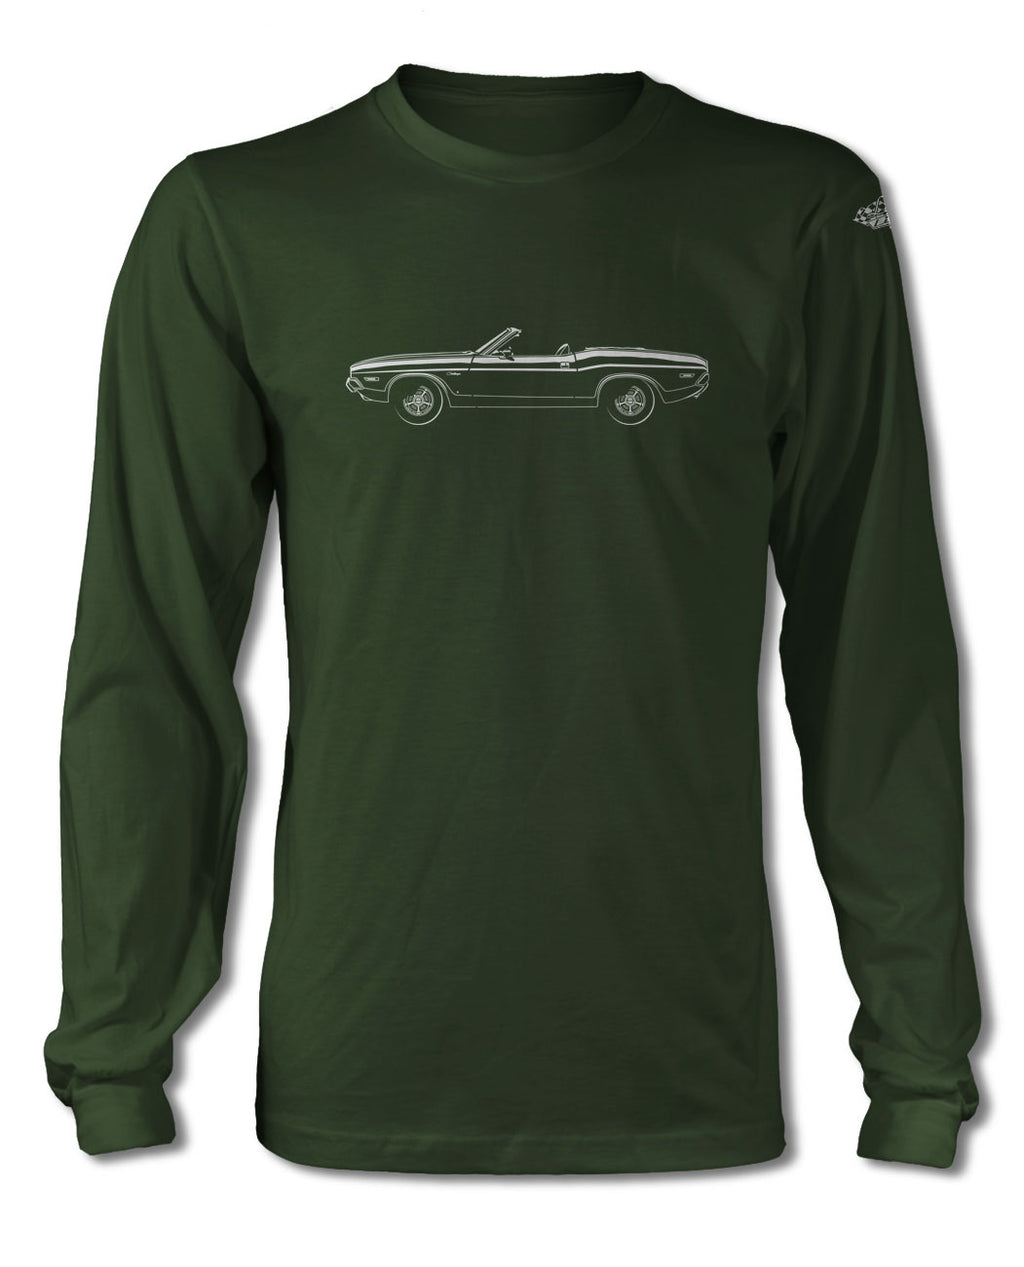 1971 Dodge Challenger Base Convertible T-Shirt - Long Sleeves - Side View